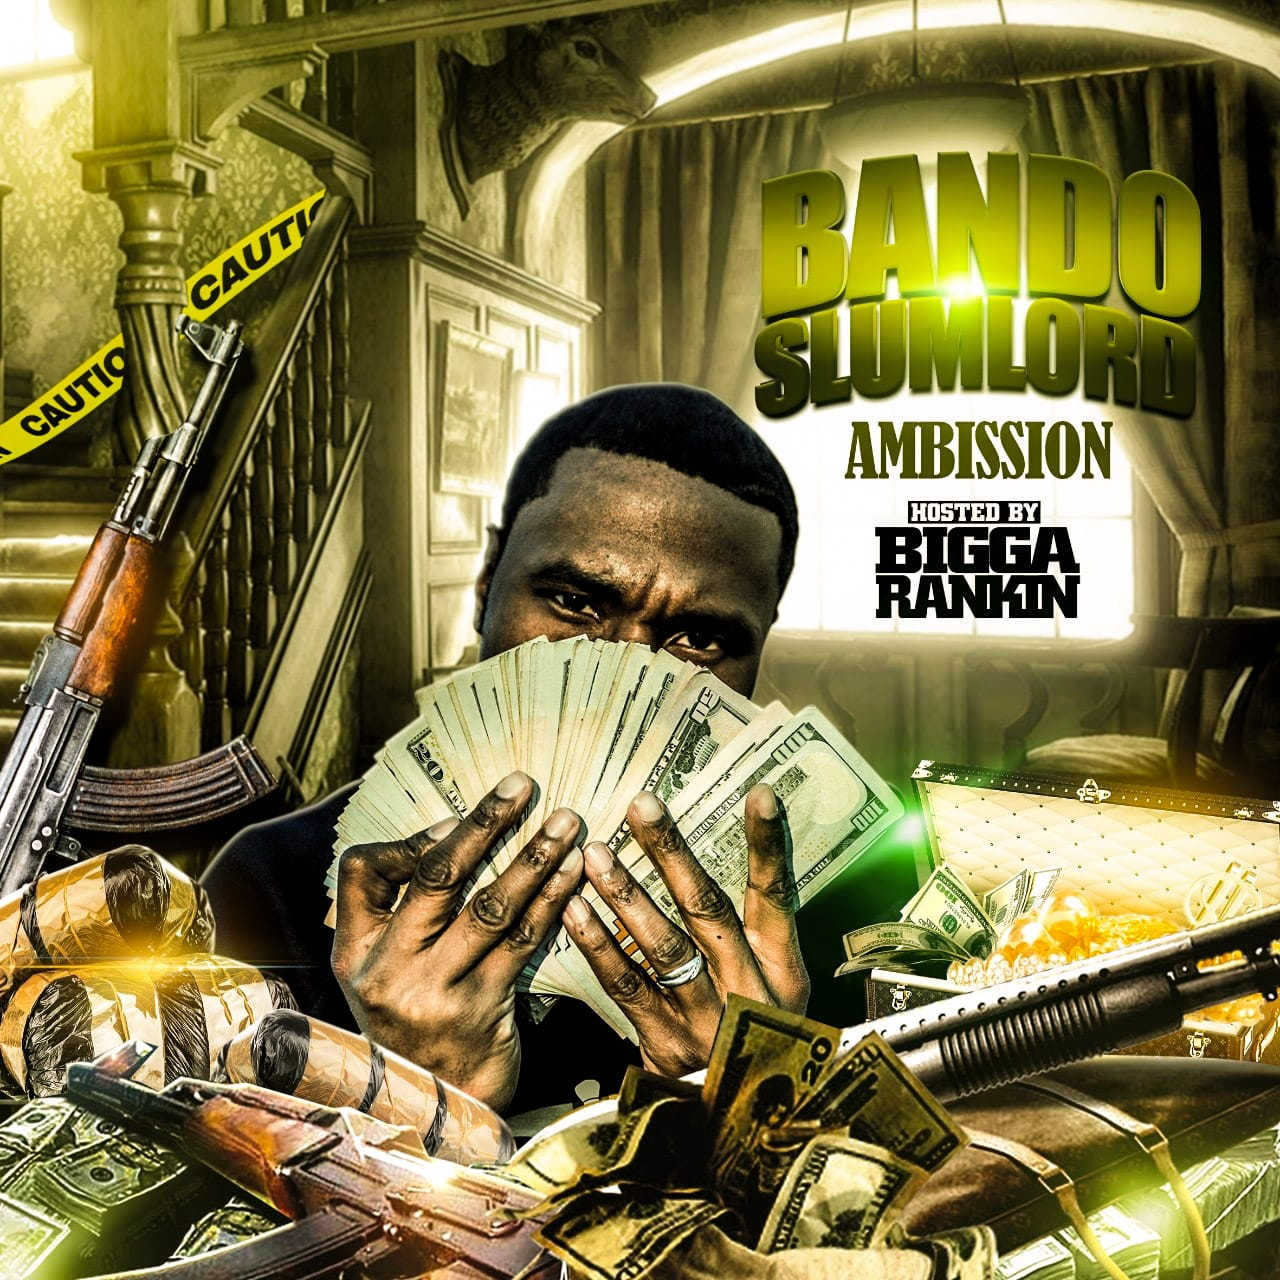 [Mixtape] Ambission – Bando Slumlord hosted by Bigga Rankin